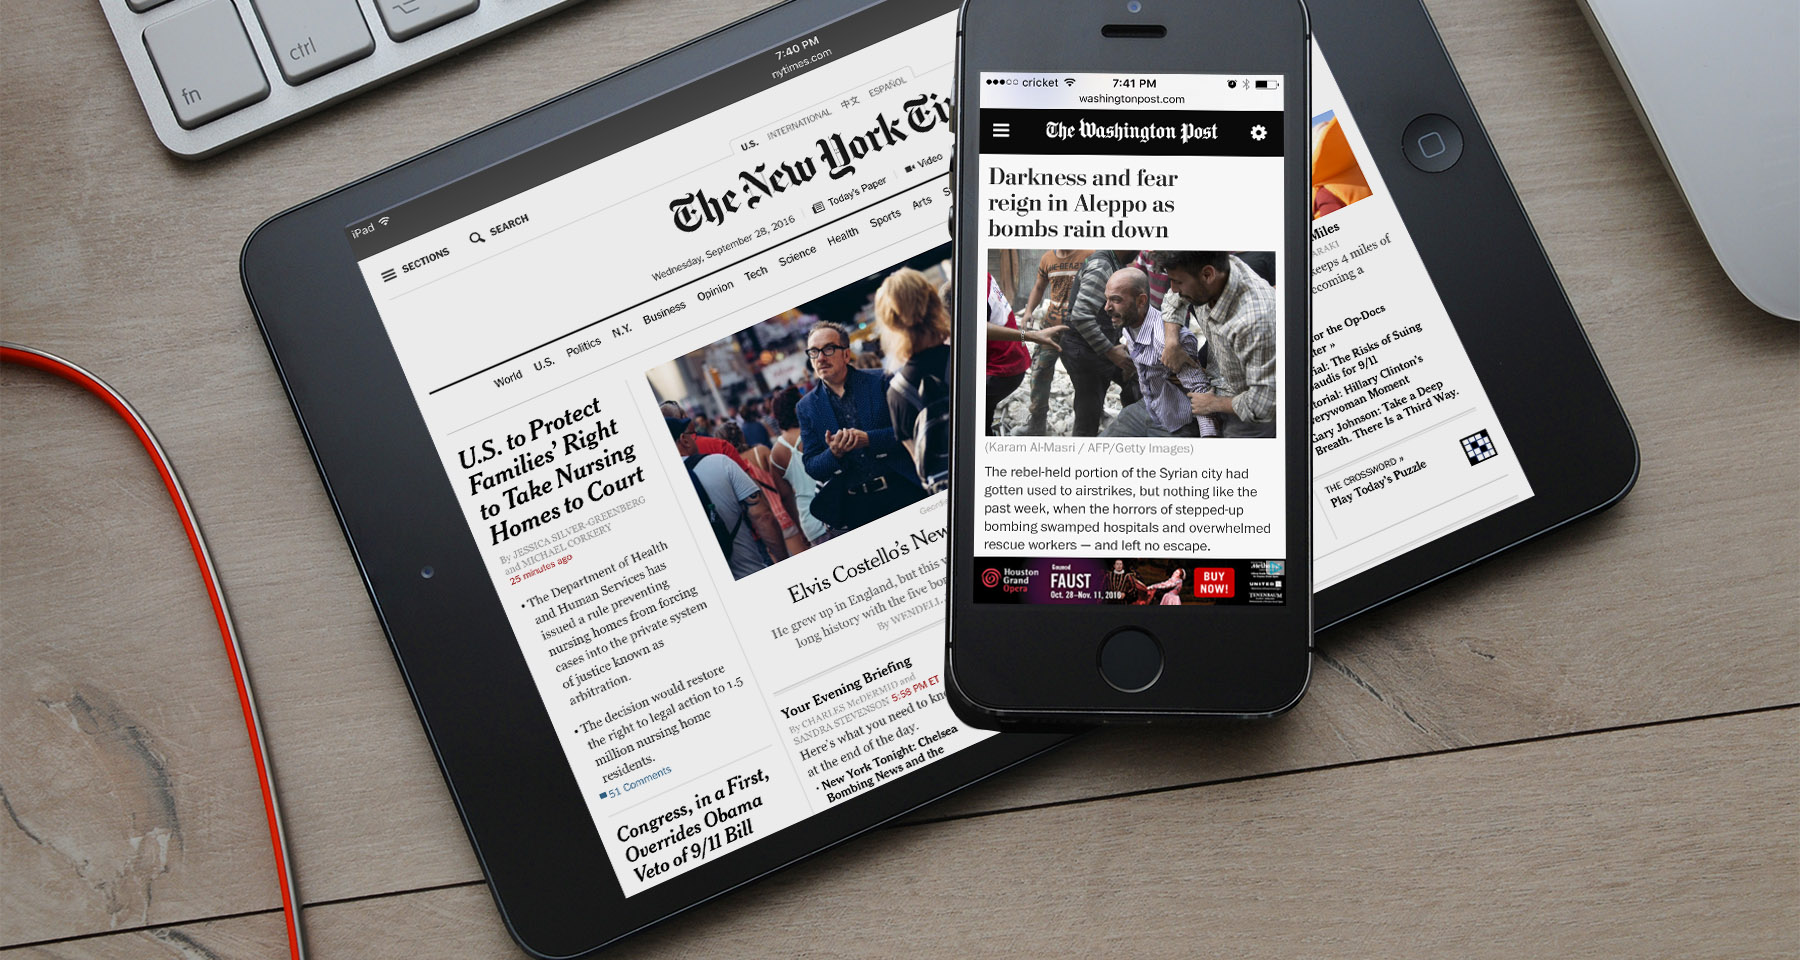 4 reasons NYT, Washington Post are increasing digital audience faster than BuzzFeed, HuffPo